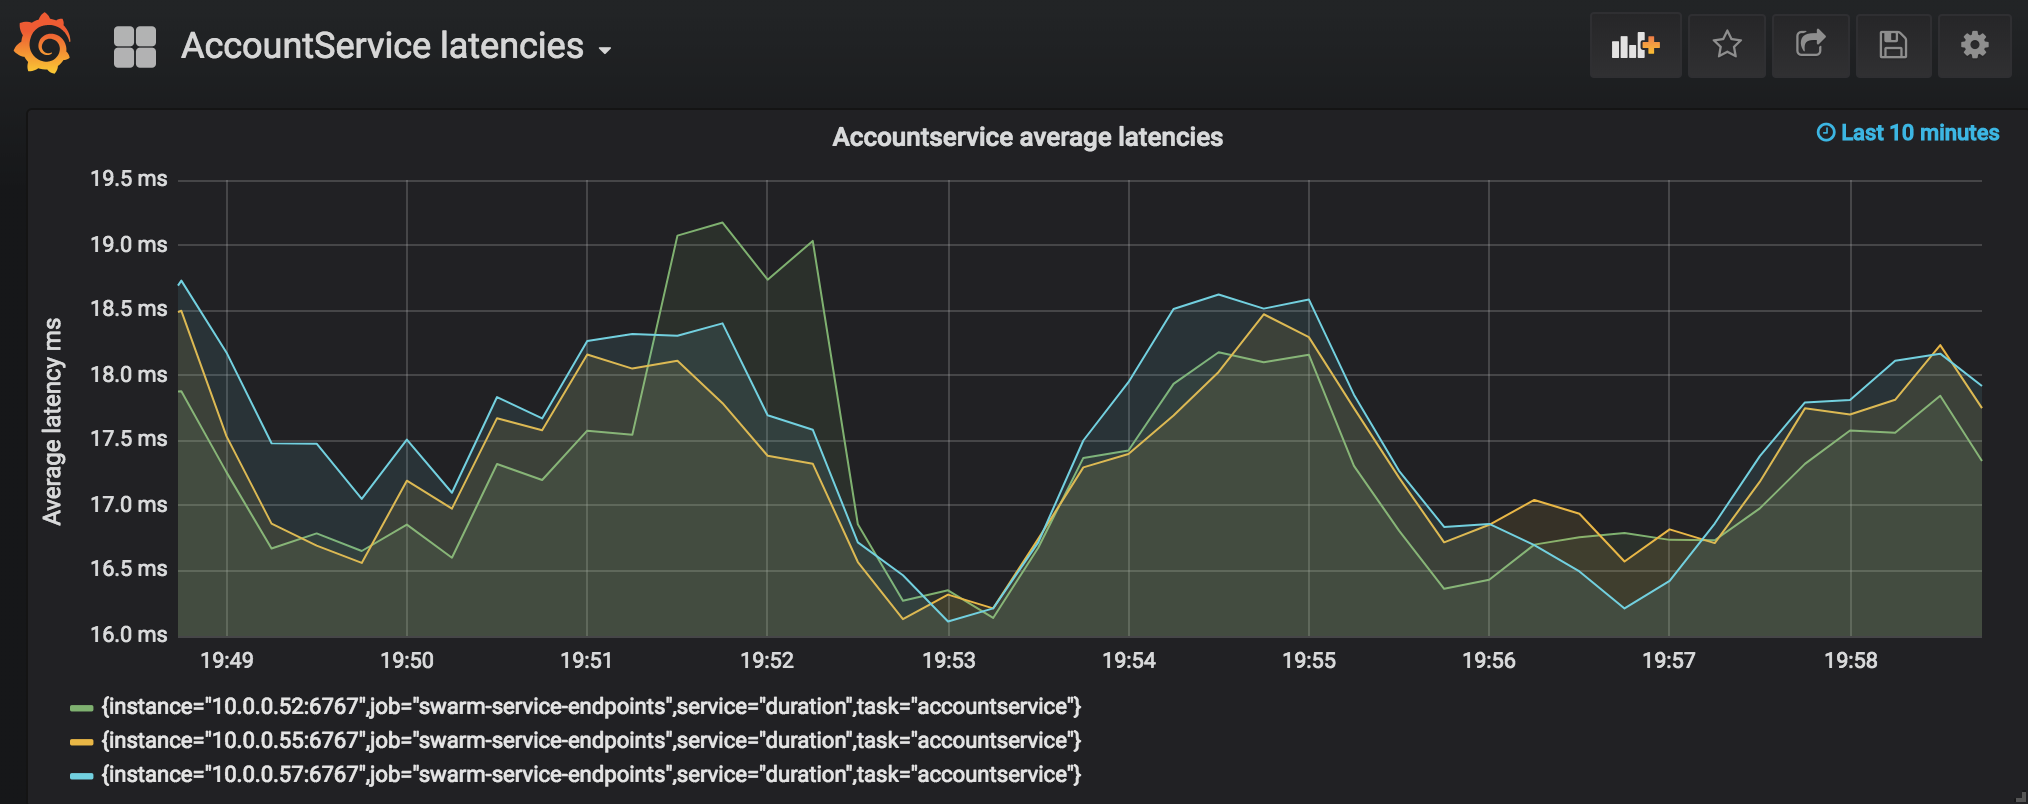 Go Microservices blog series, part 15 - Monitoring with